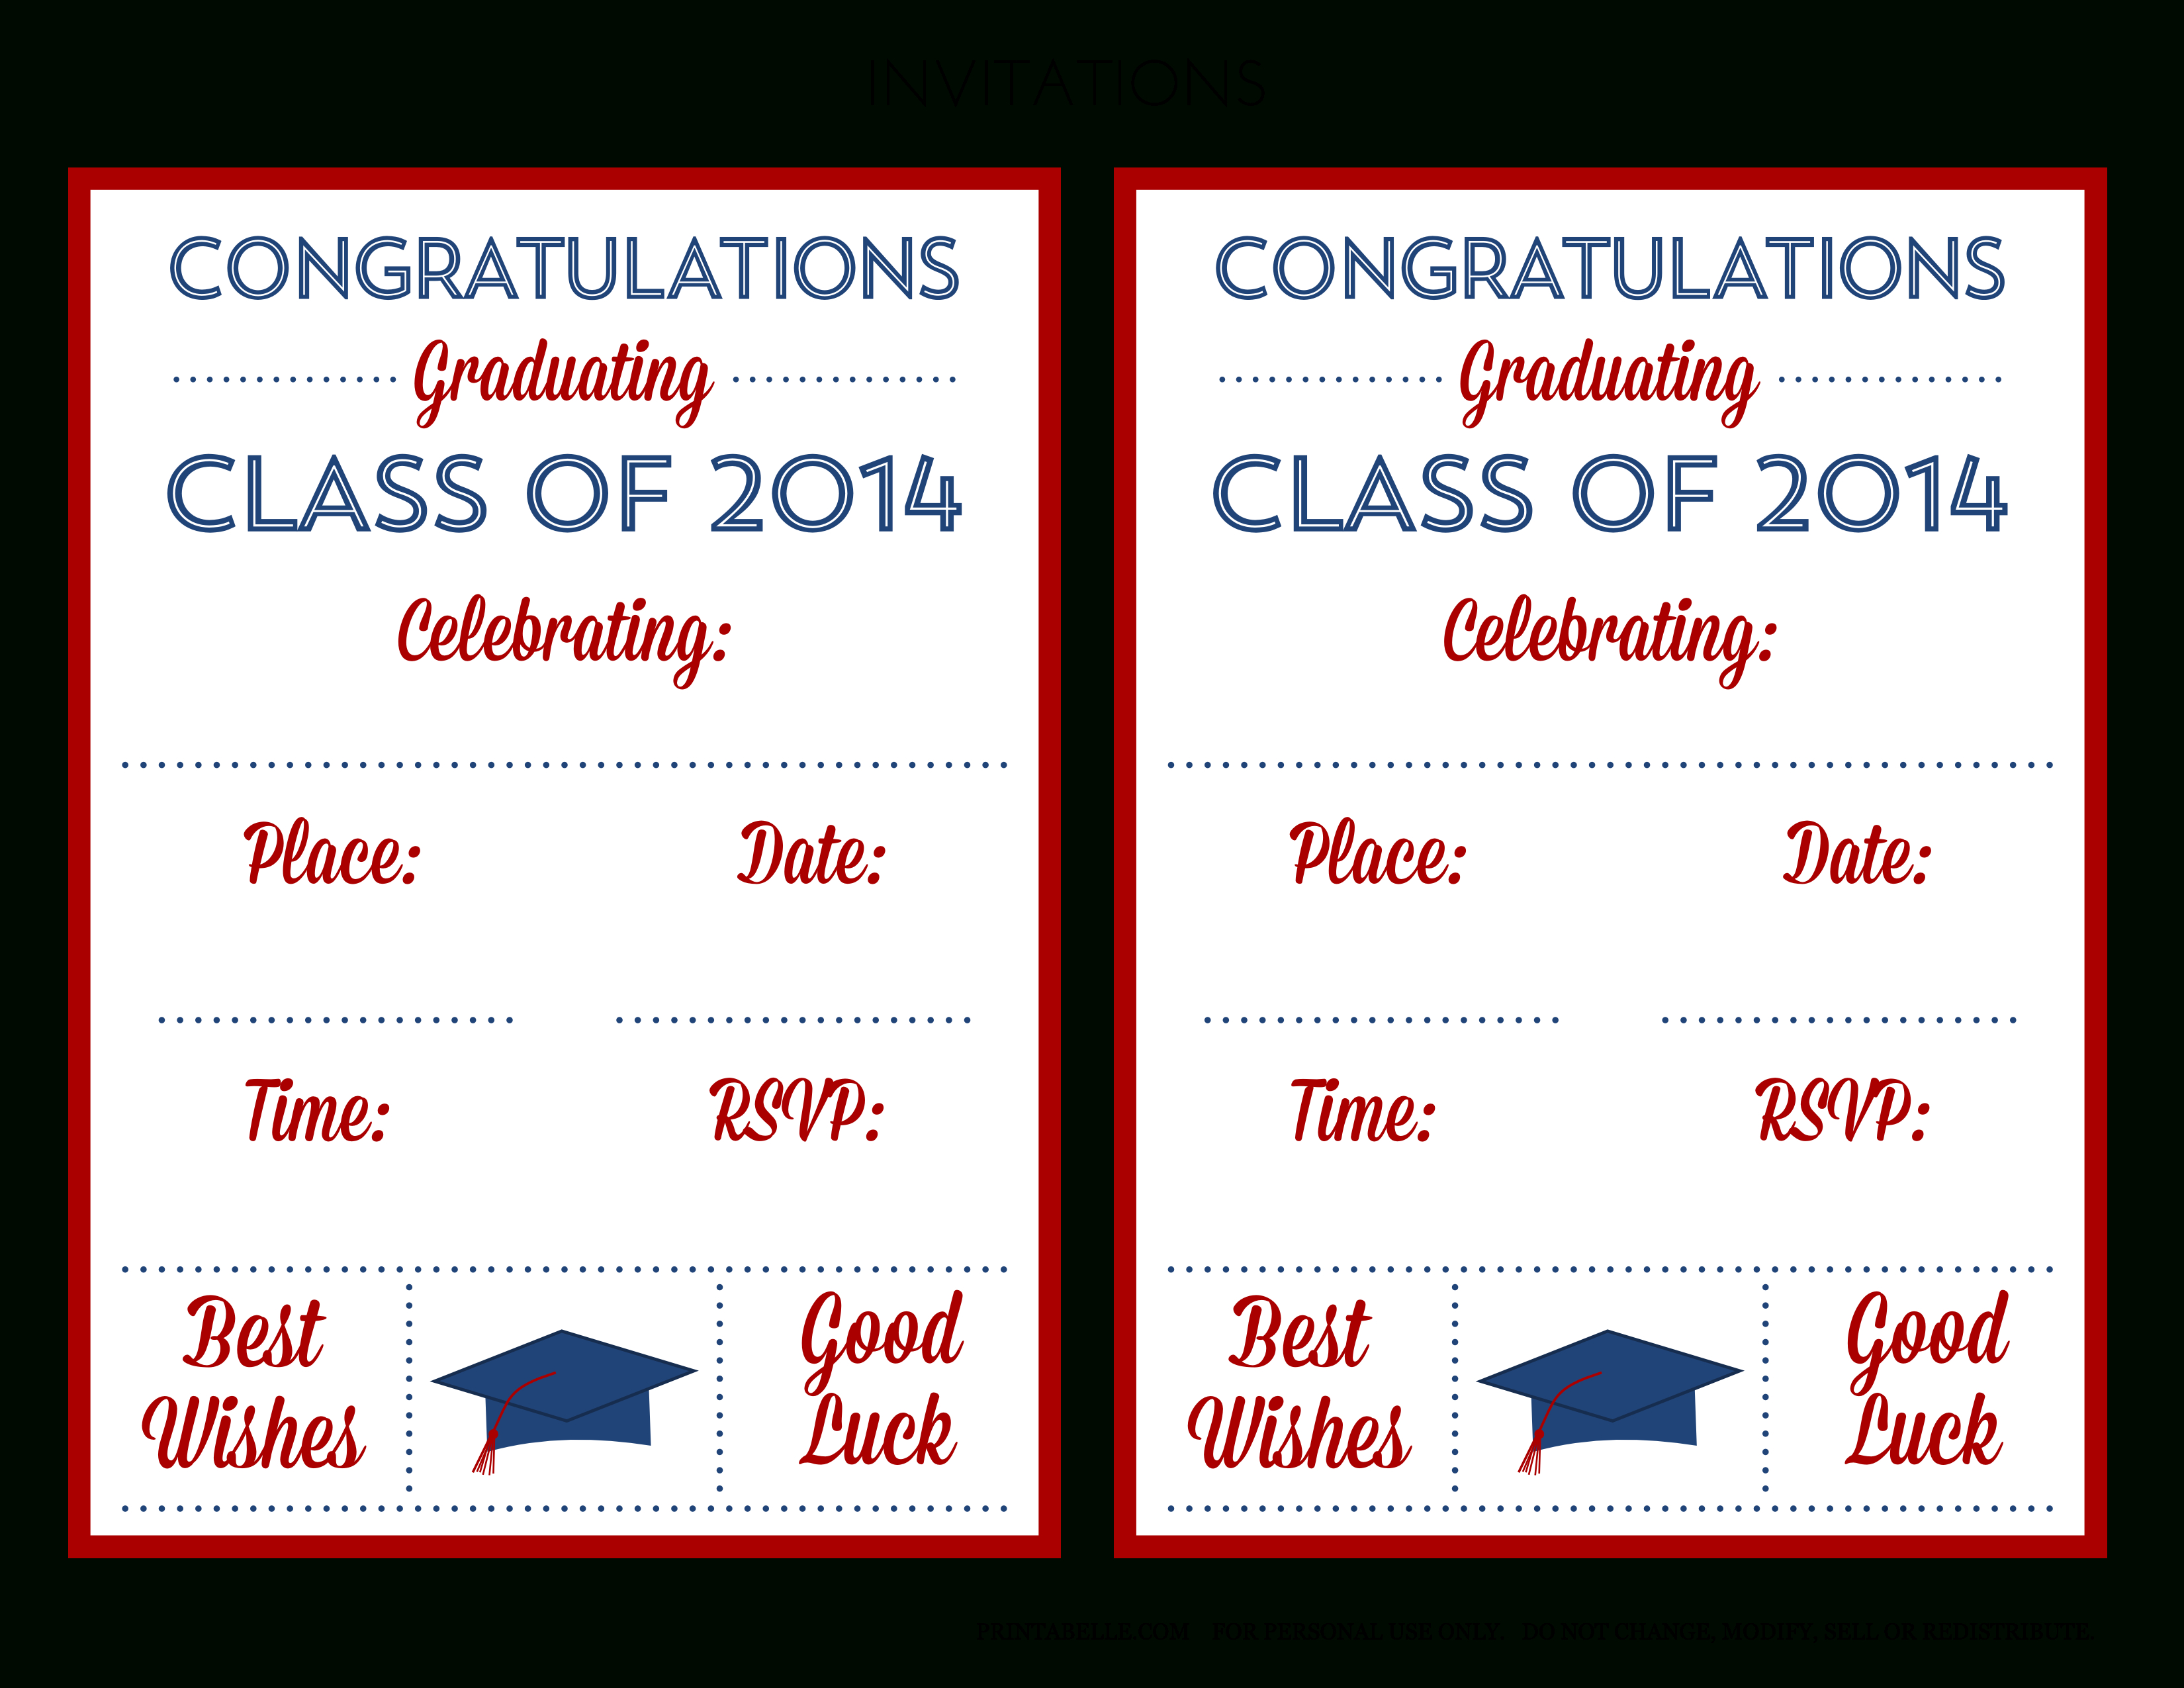 Free 2014 Graduation Party Printables From Printabelle | Catch My Party - Free Printable Graduation Invitations 2014